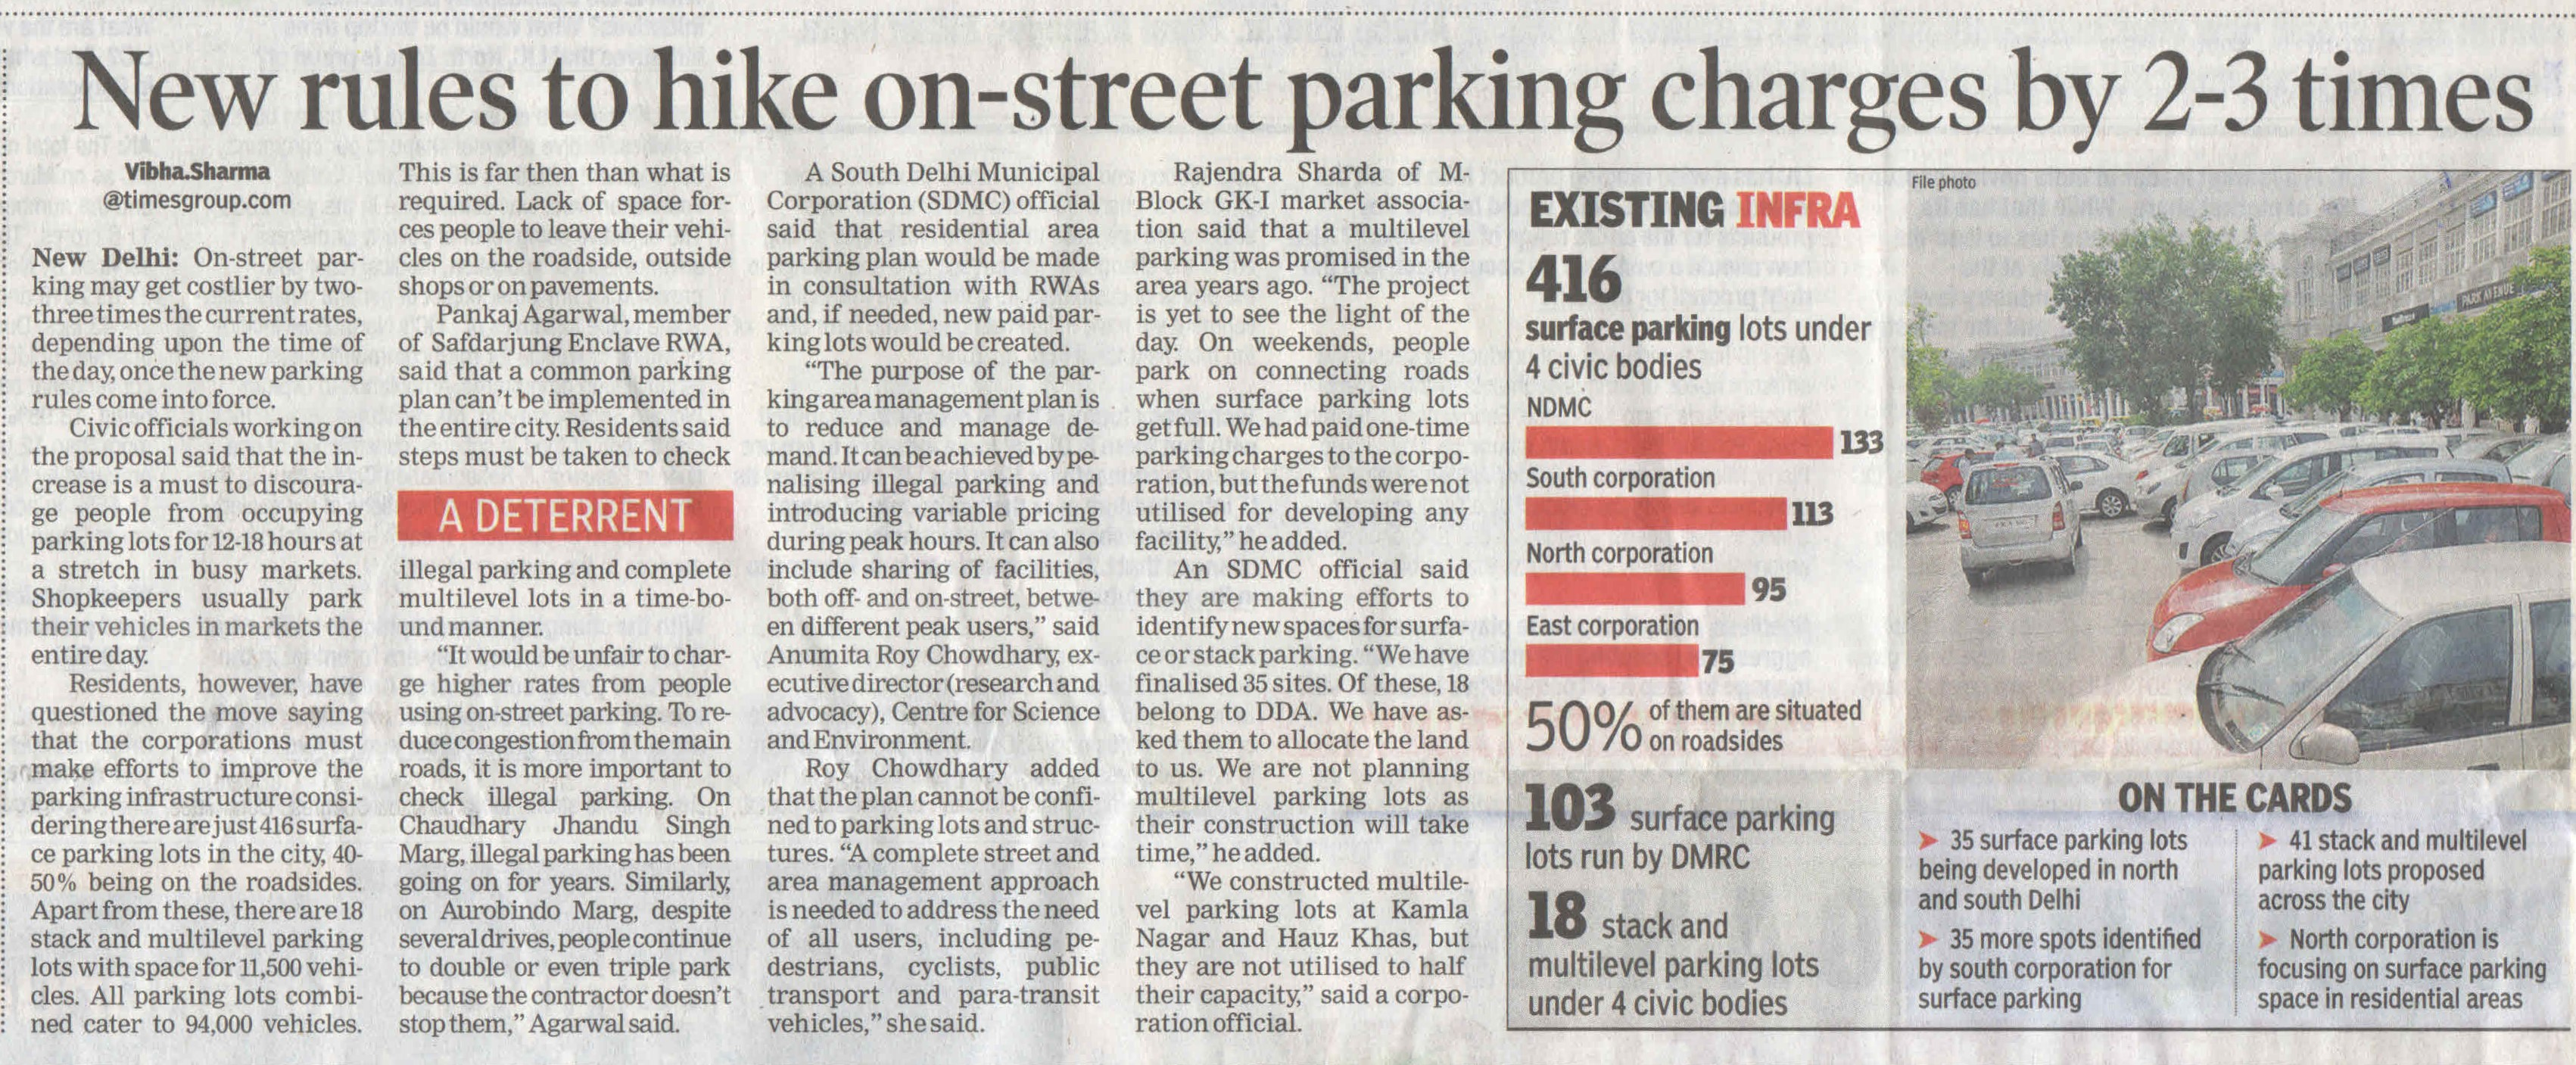 New Rules to hike on street parking charges by 2-3 times